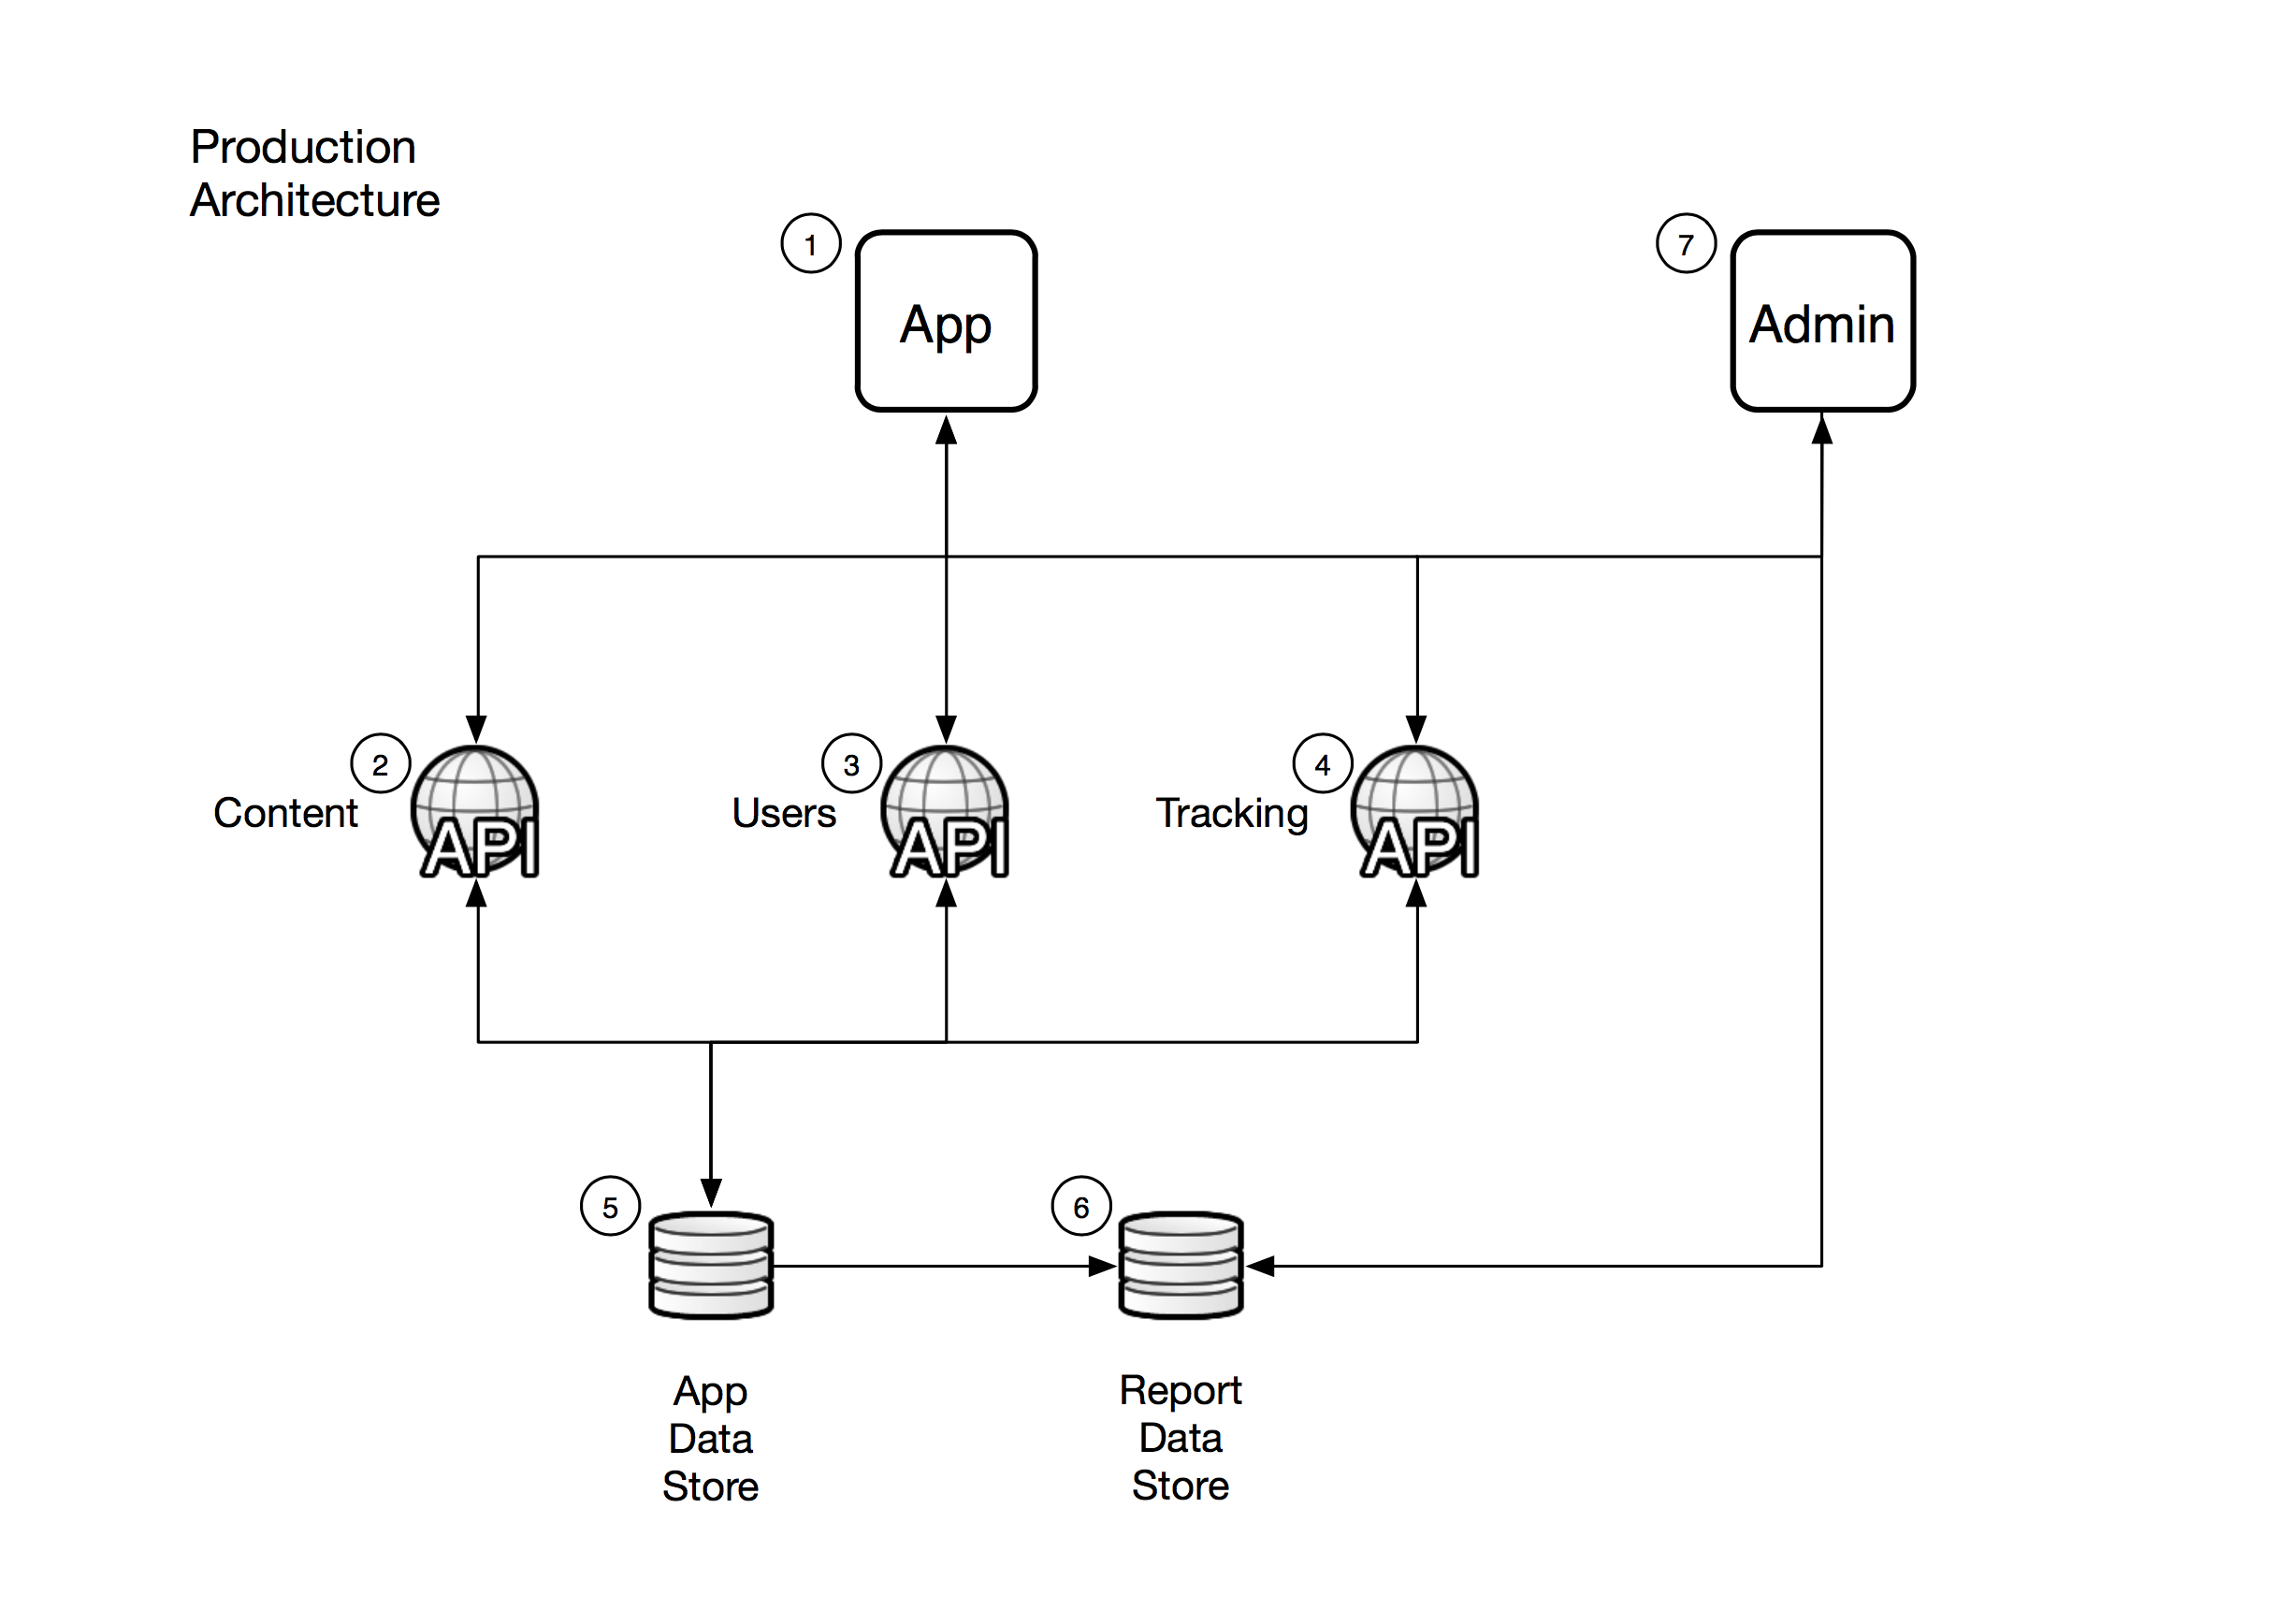 Major components of a possible production architecture